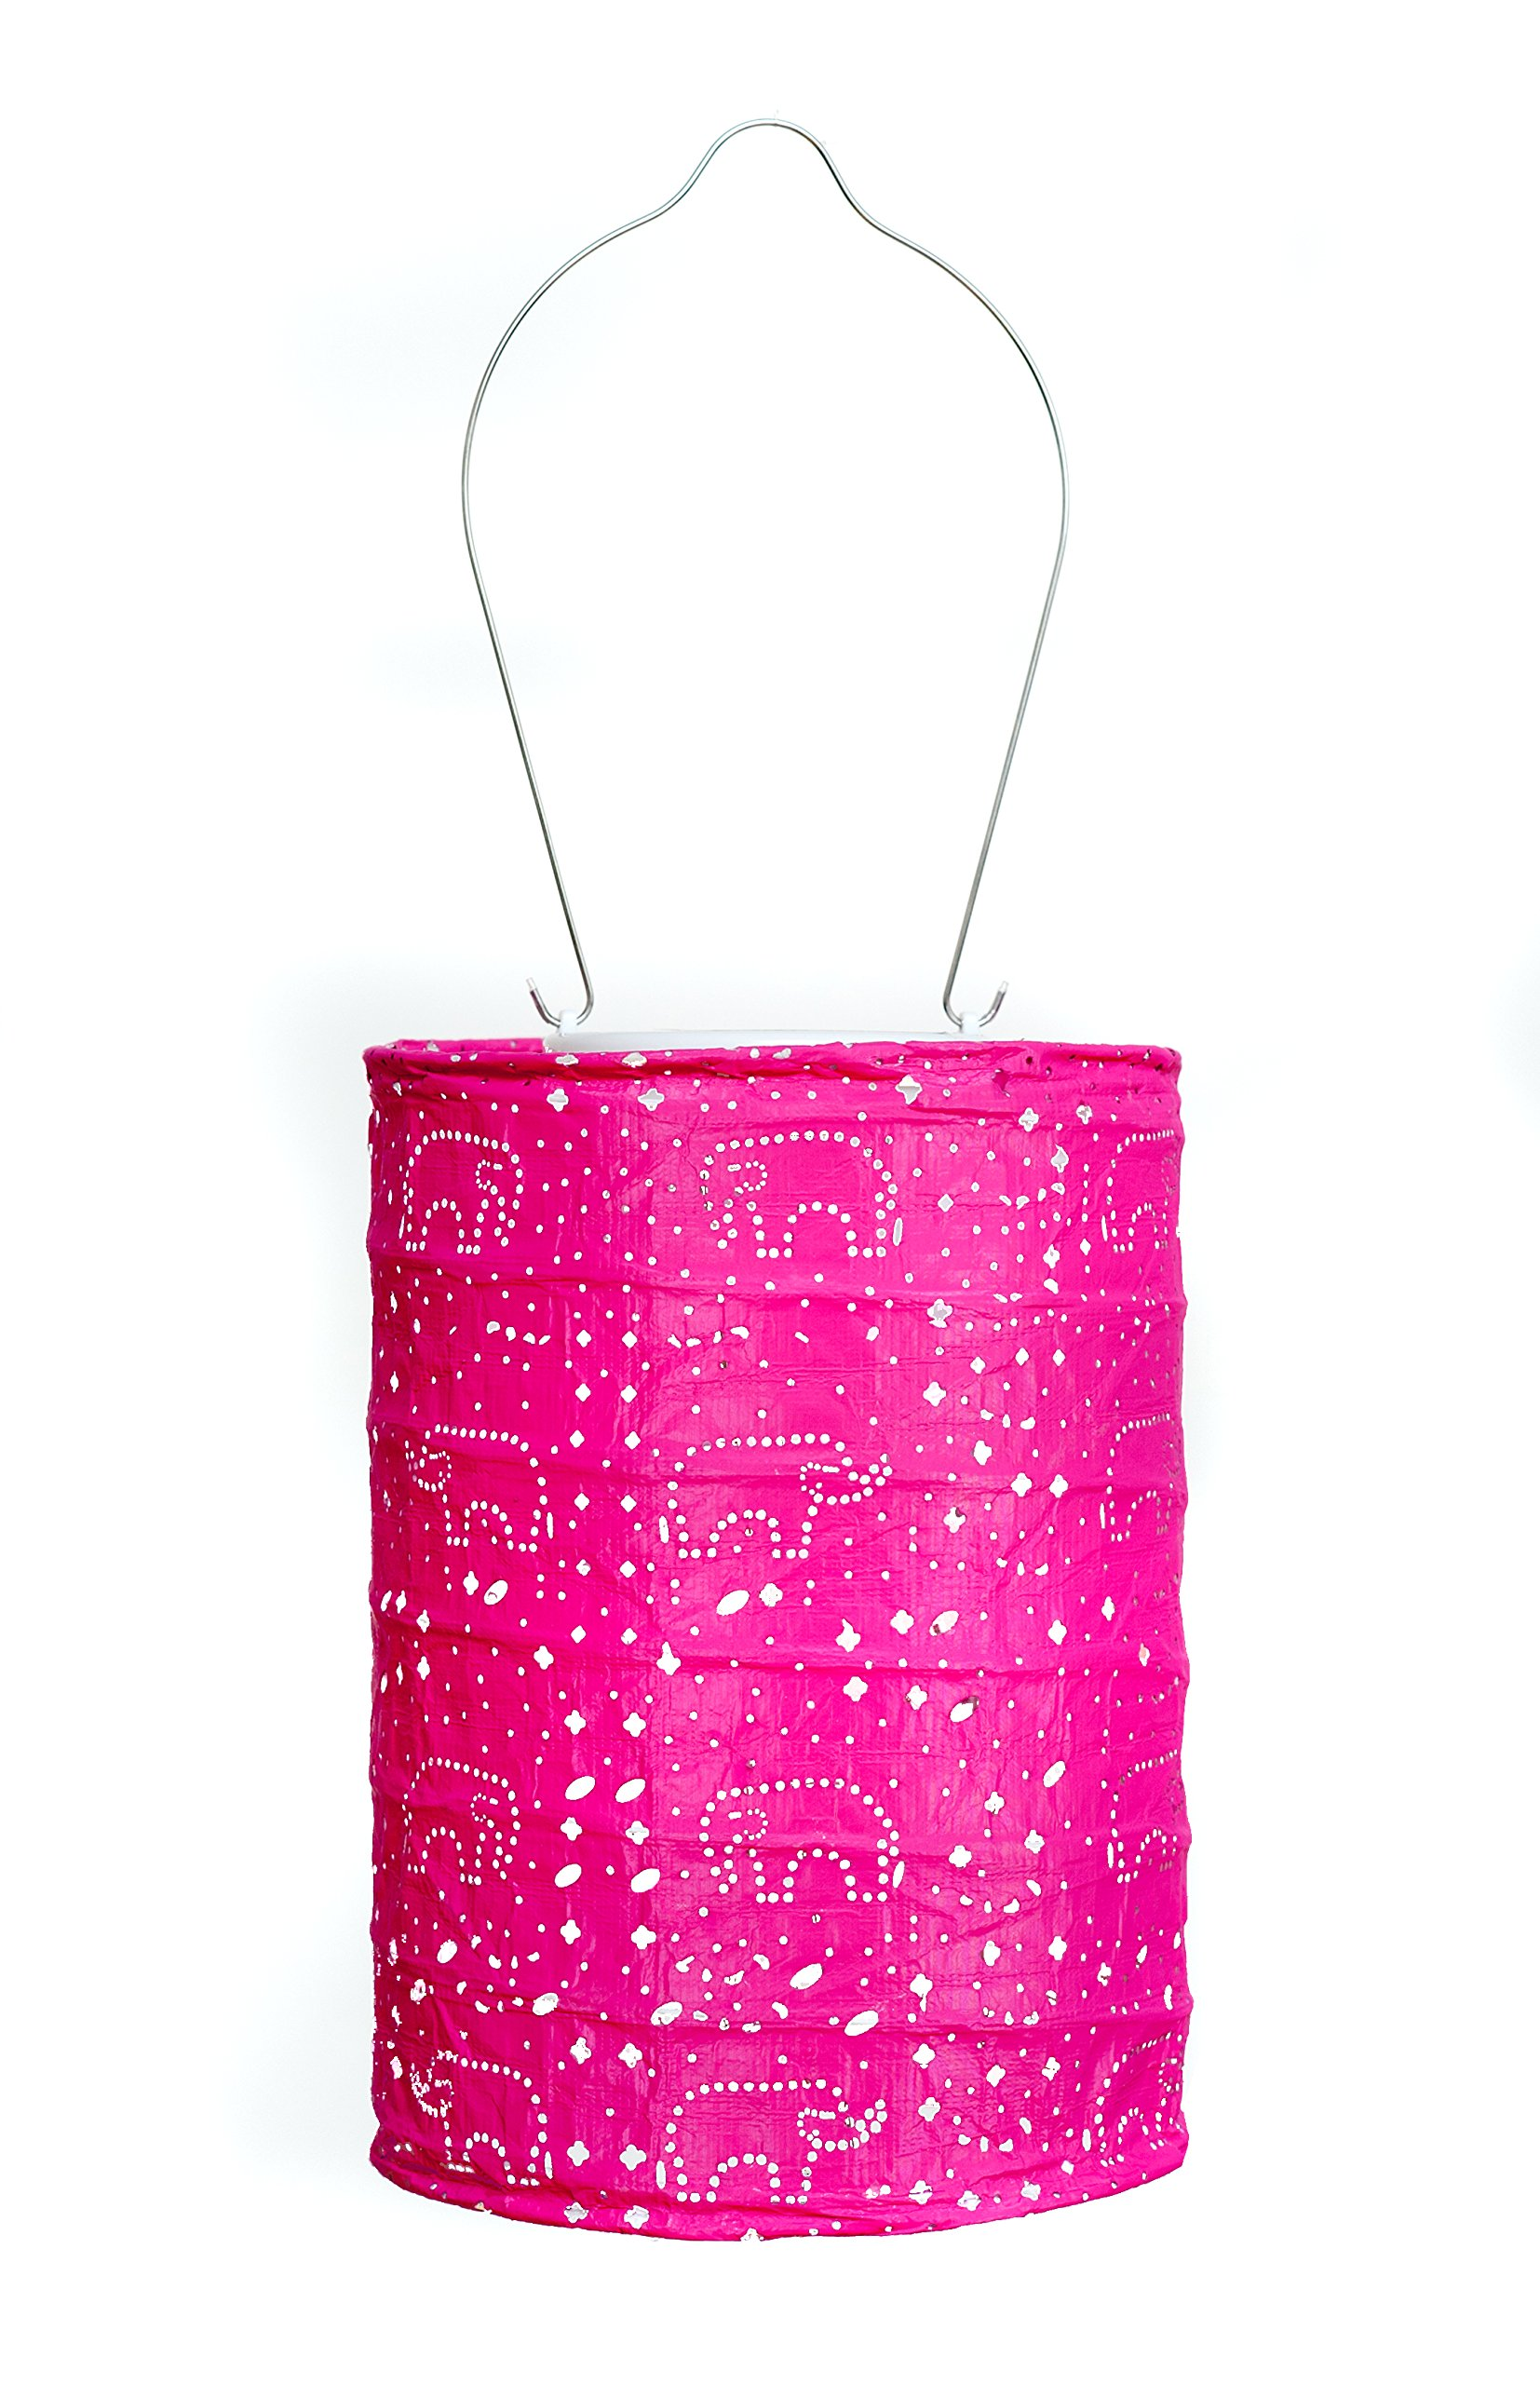 Allsop Home and Garden Soji Stella Dream LED Outdoor Solar Lantern, Handmade with Weather-Resistant UV Rated Tyvek Fabric, Stainless Steel Hardware, Auto sensor on/off,  for Patio, Deck, Garden, Color (Raspberry)